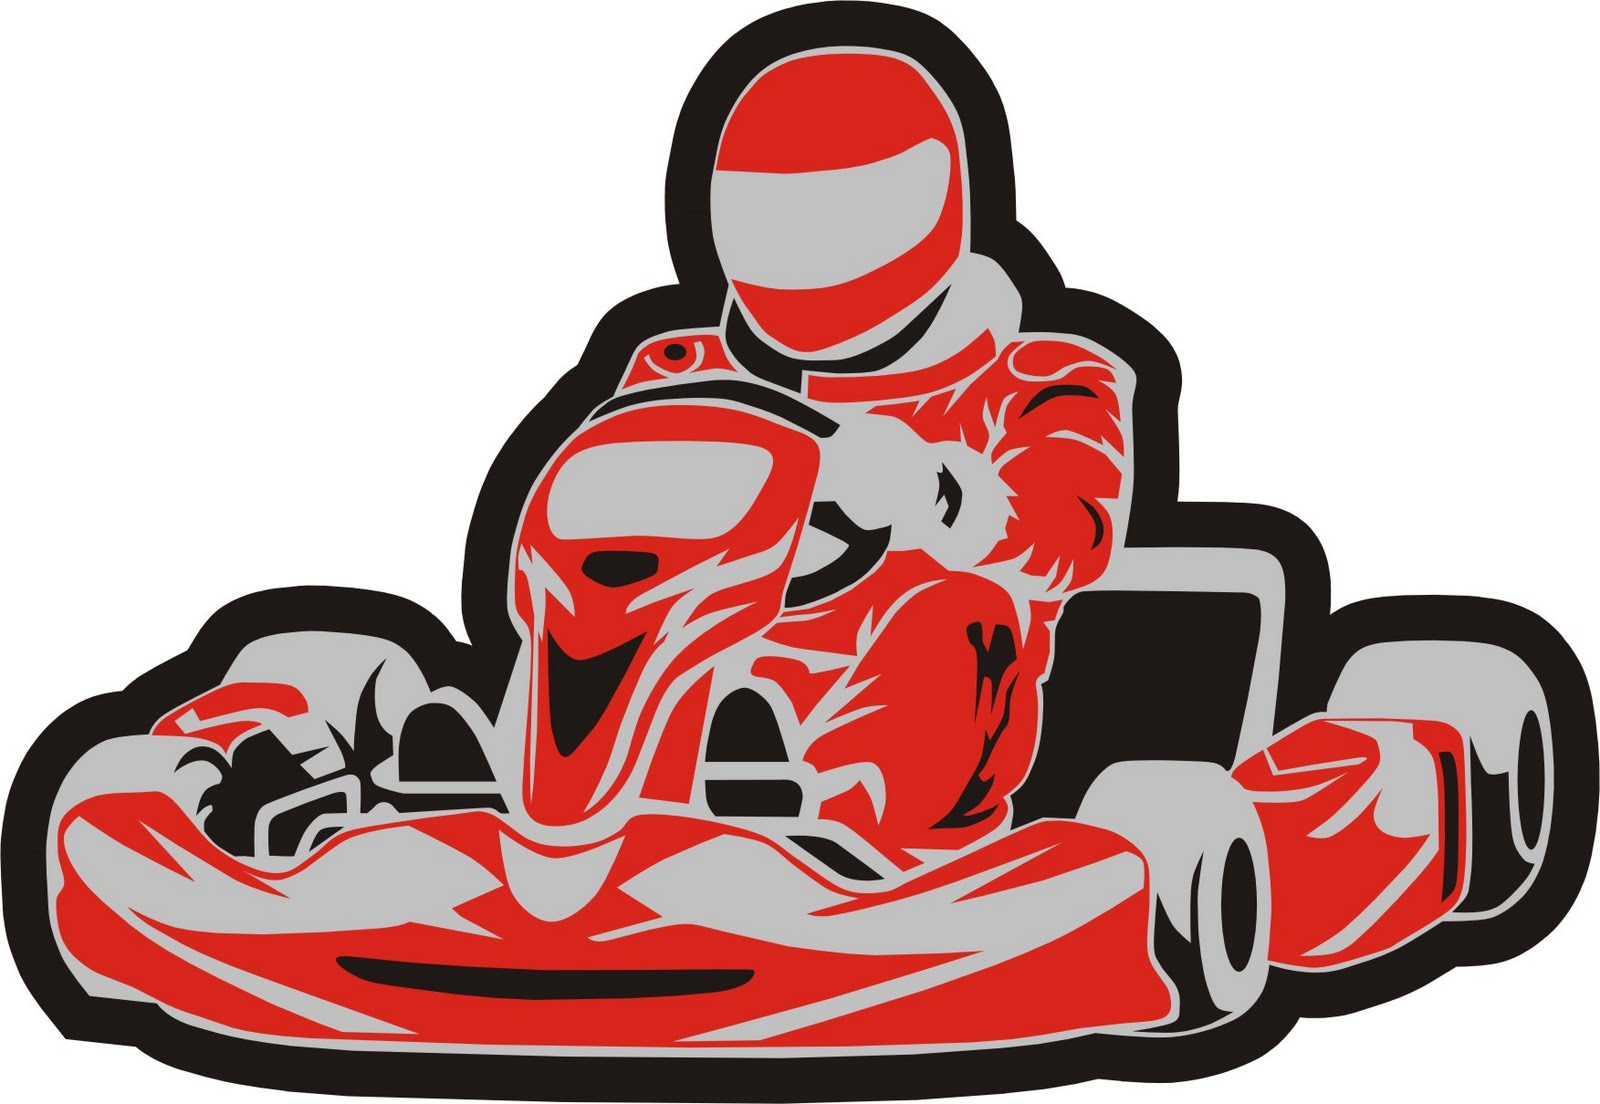 Cartoon Go Karts http://customvinylsticker.blogspot.com/2010/09/gokart-sticker.html